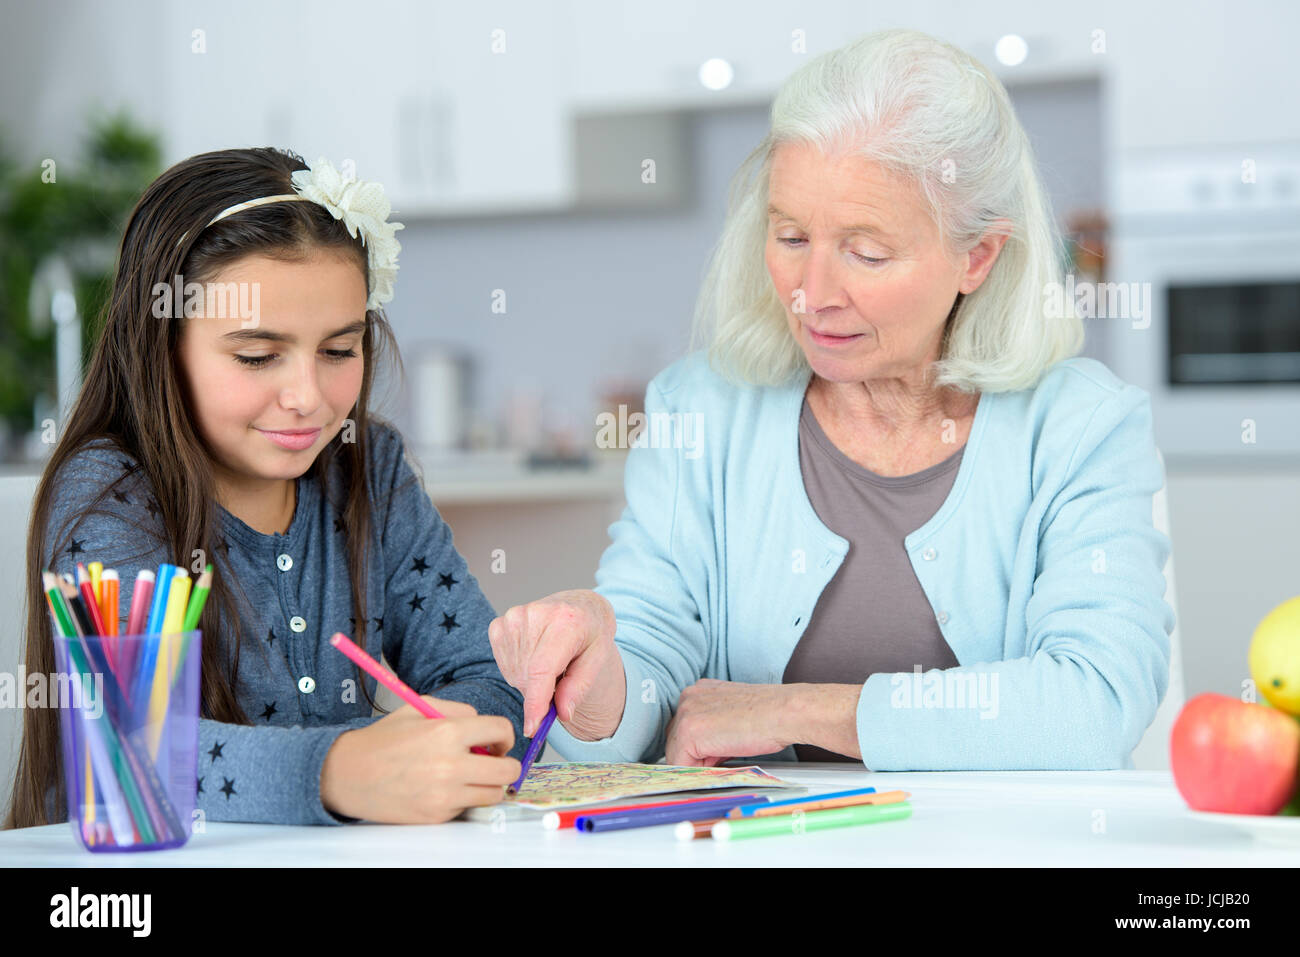 portrait of little girl with grandmother drawing with pencils - Stock Image